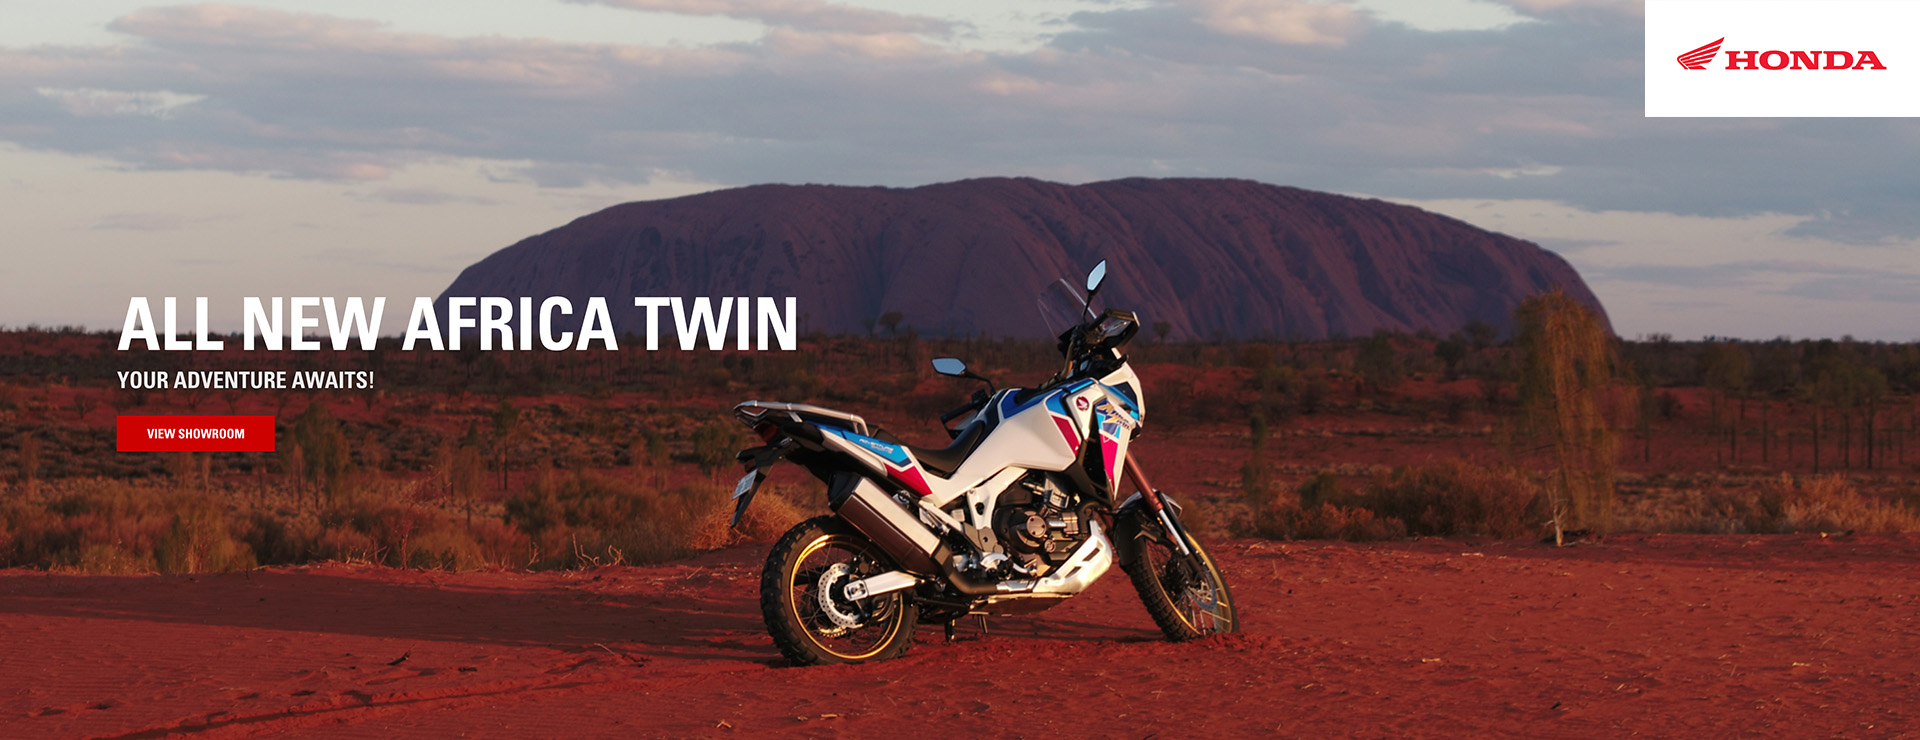 All New Africa Twin